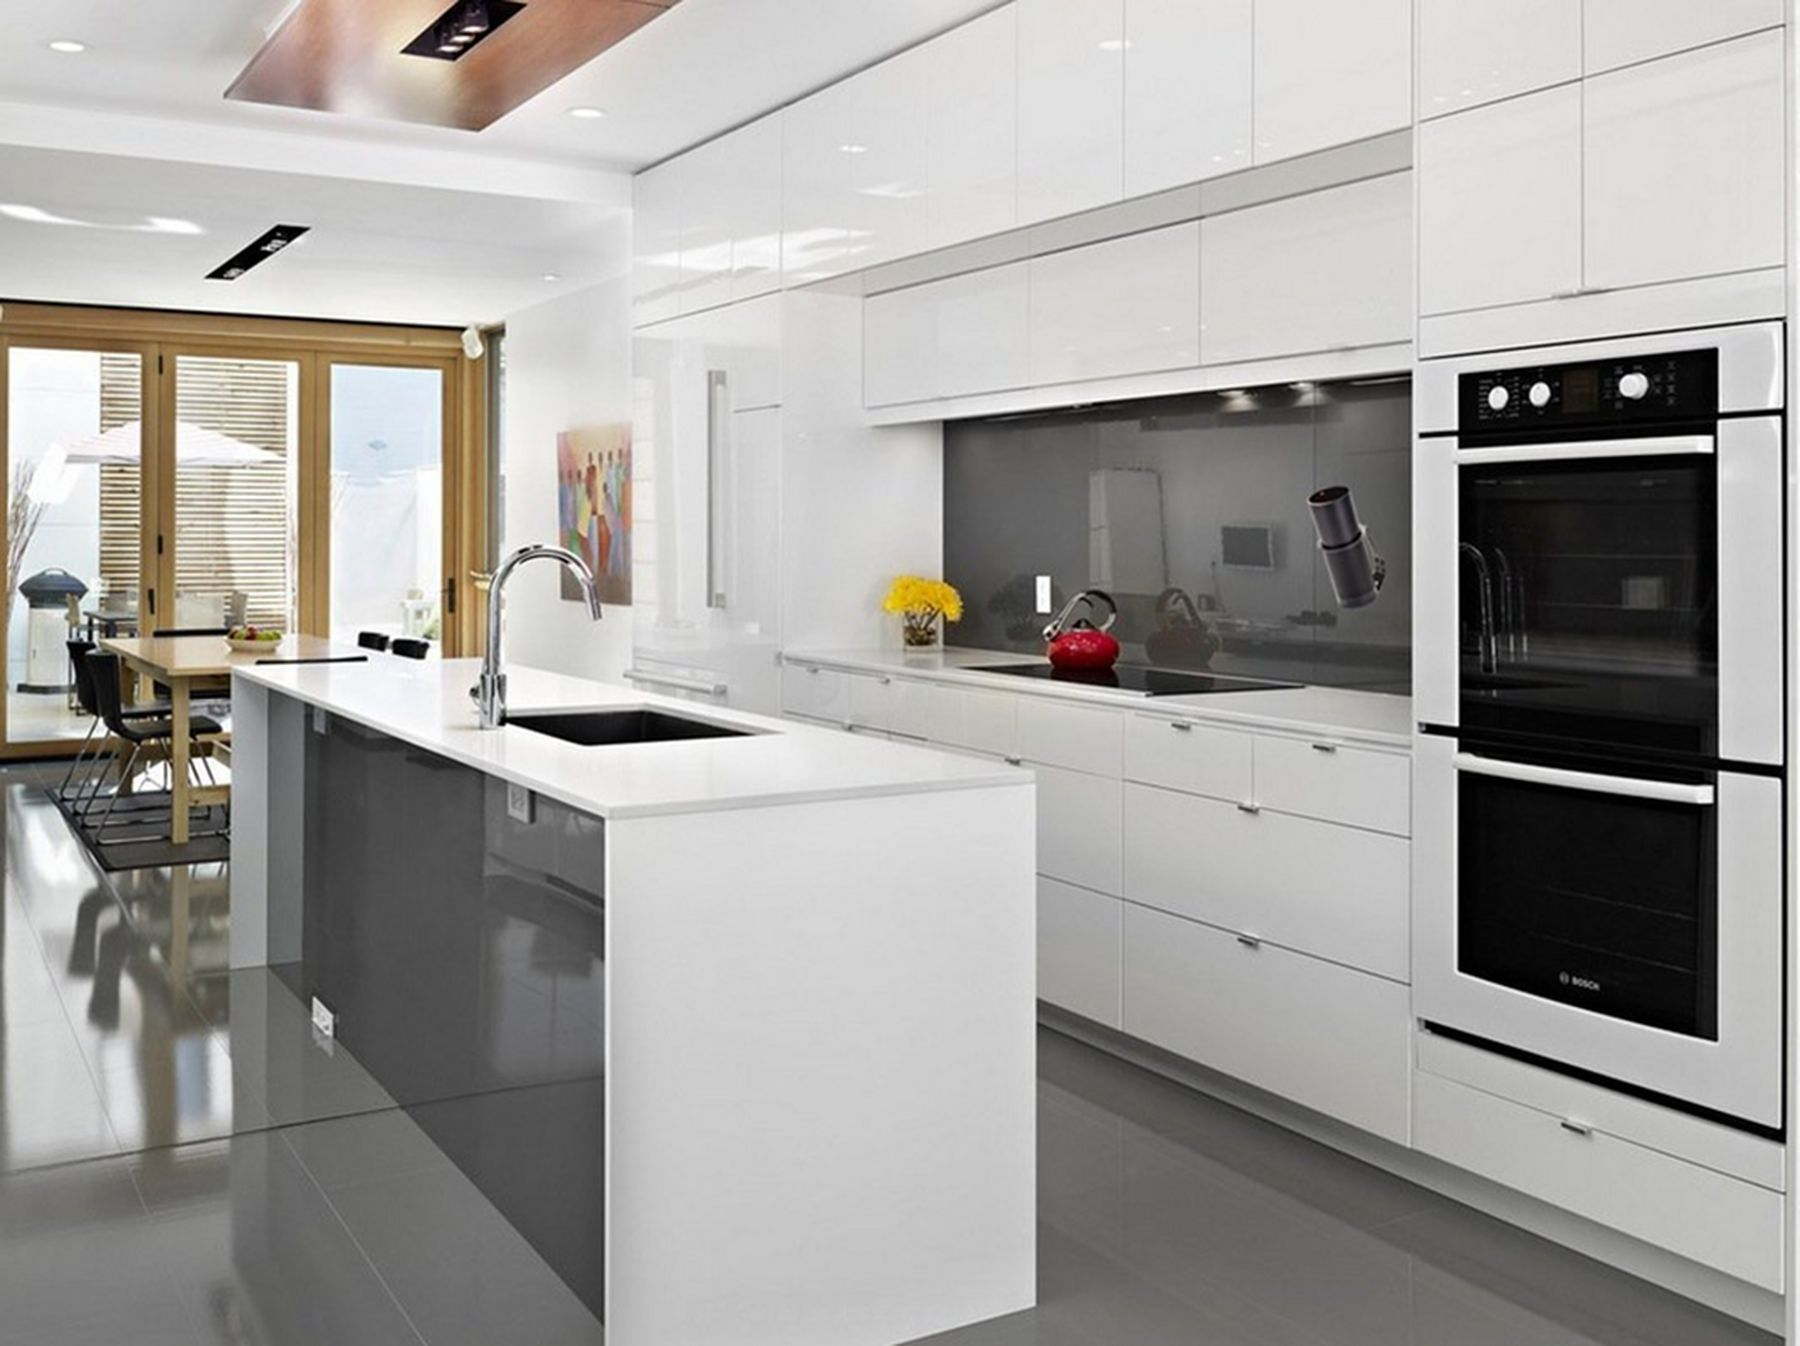 12 Beautiful White Kitchen Design Idea So That The Kitchen Looks